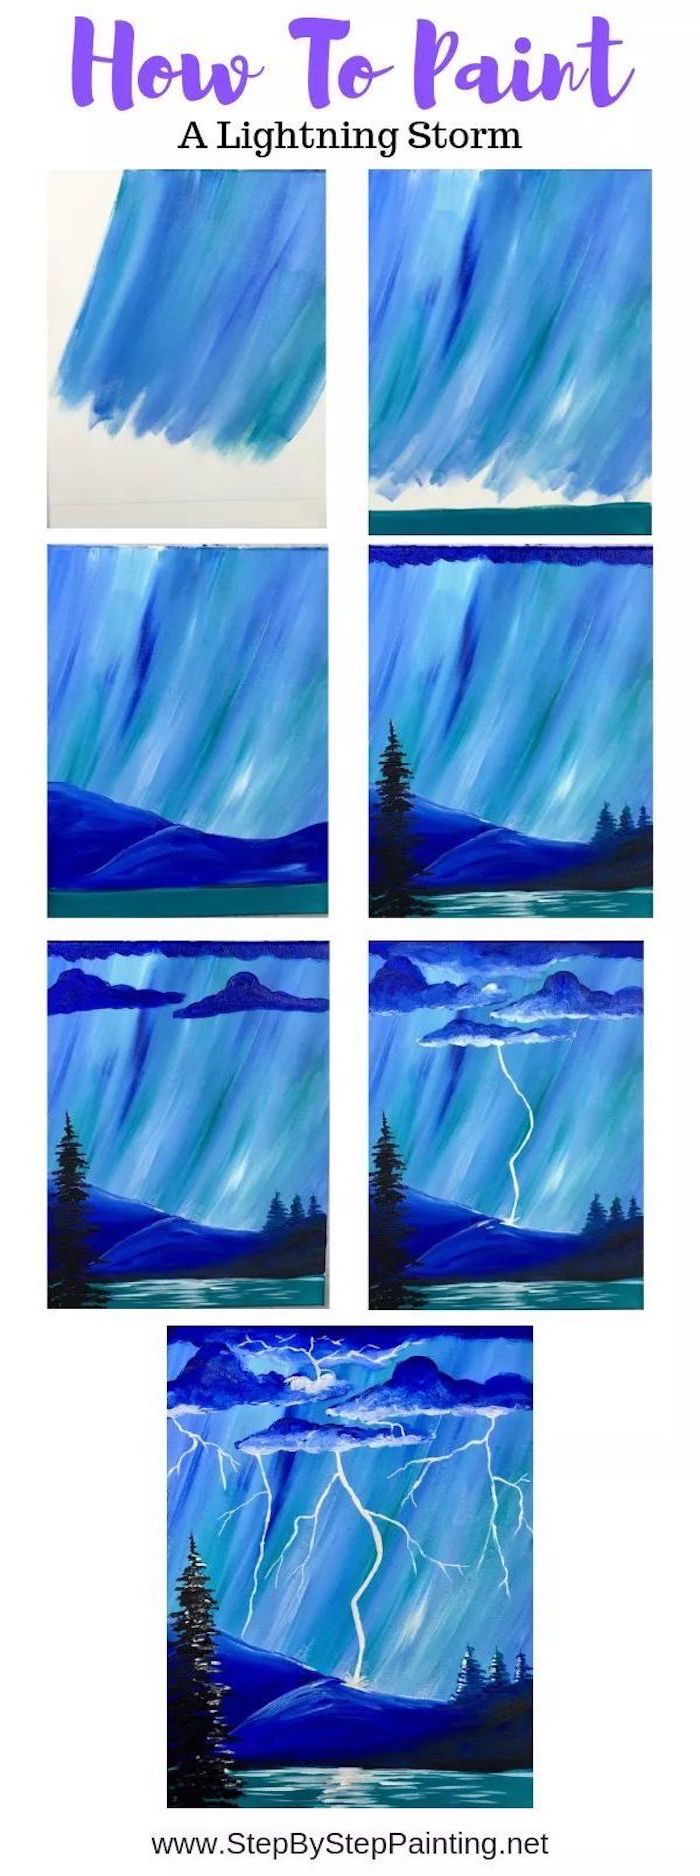 acrylic painting techniques, how to paint a lightning storm, photo collage of step by step diy tutorial, step by step acrylic painting tutorial